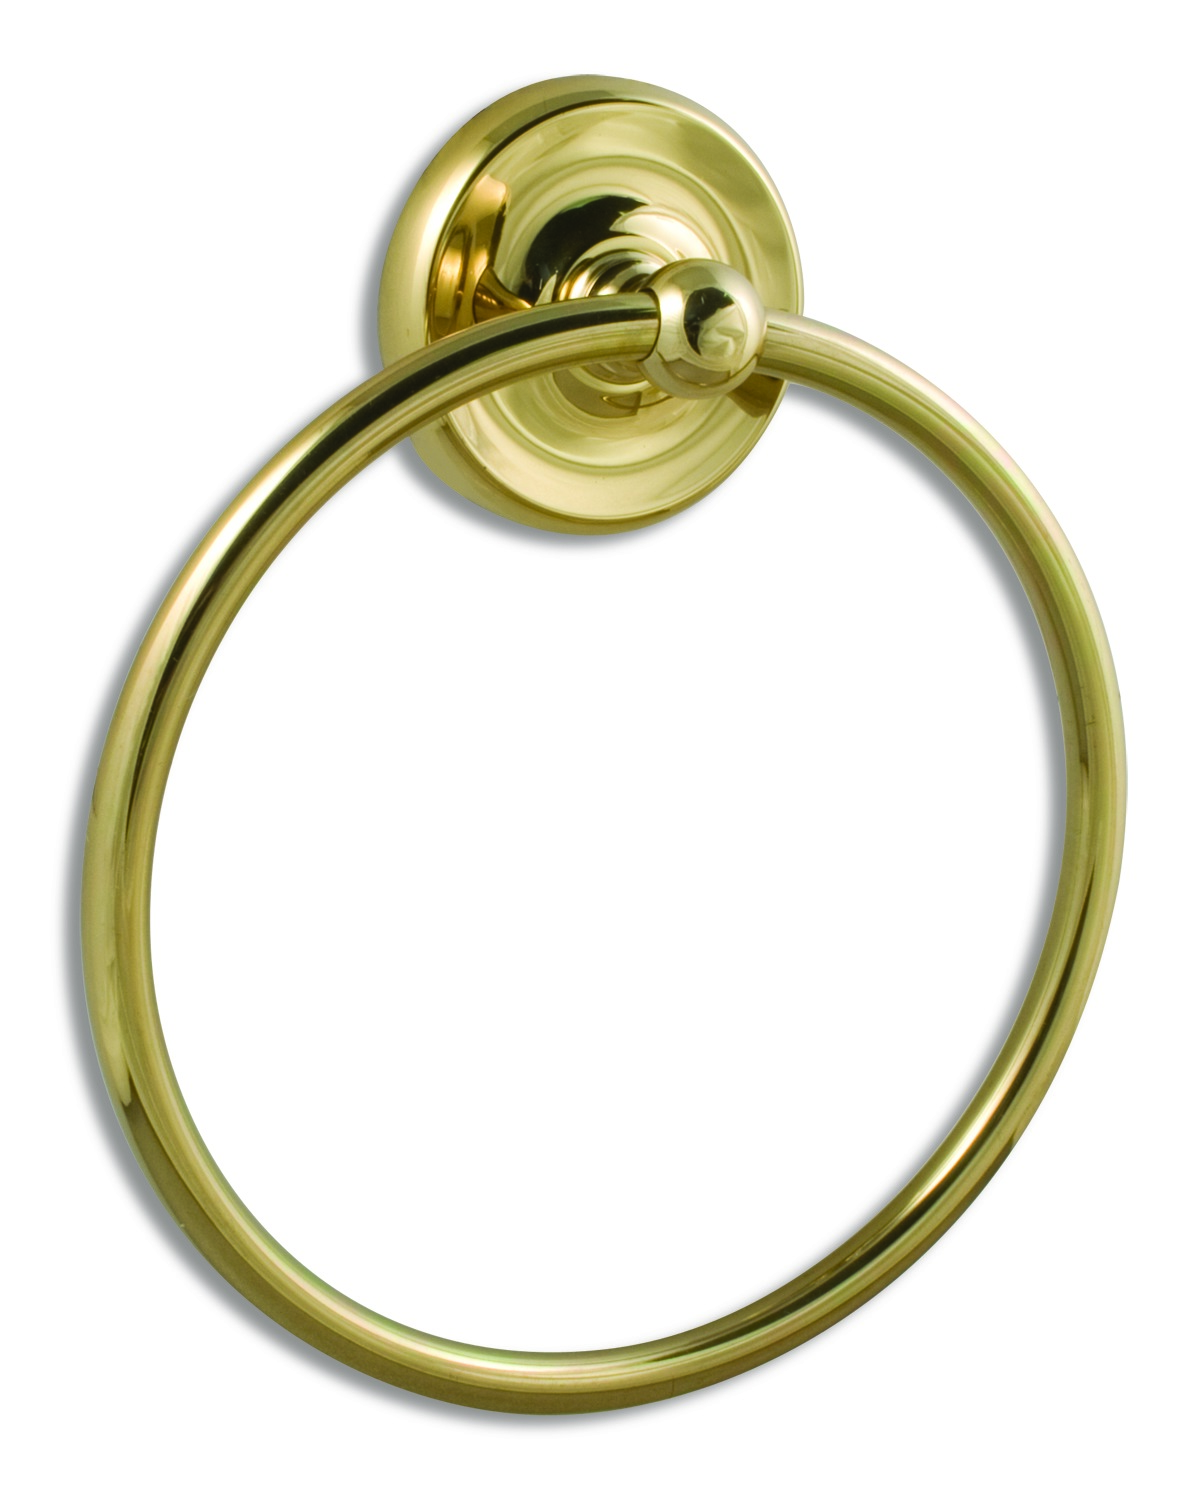 Solid Brass Towel Ring